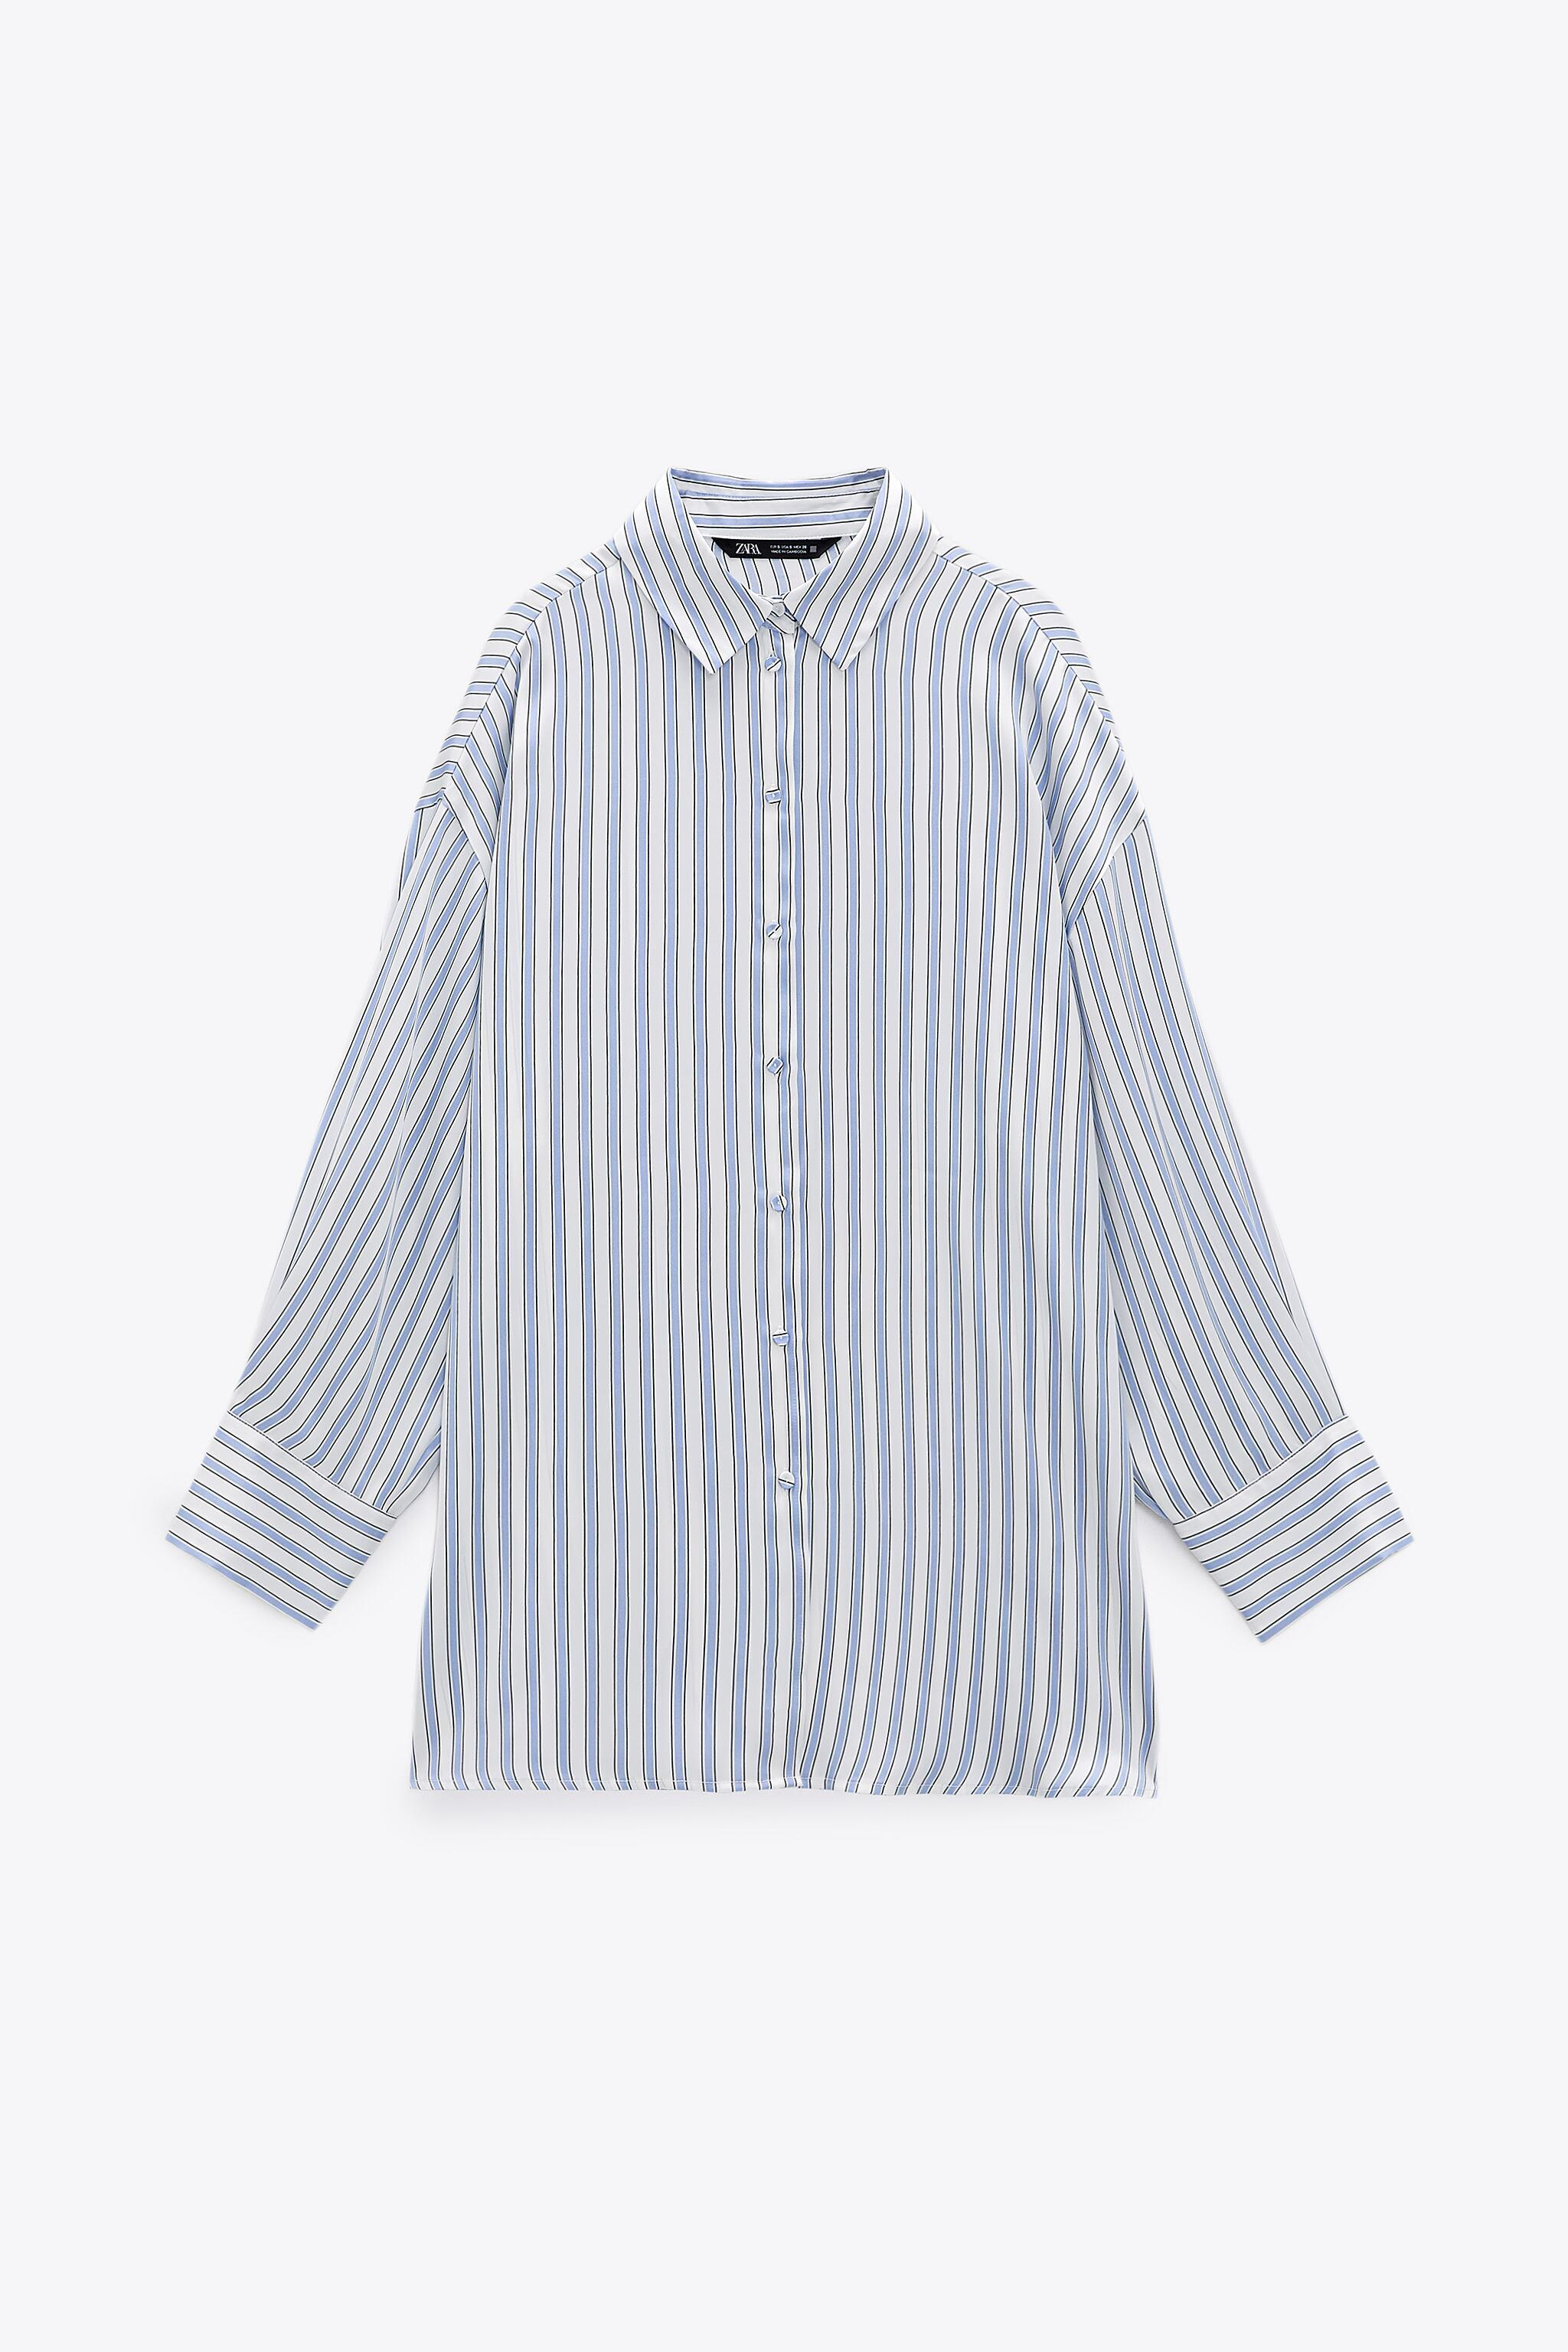 FLOWY LINED BUTTON SHIRT